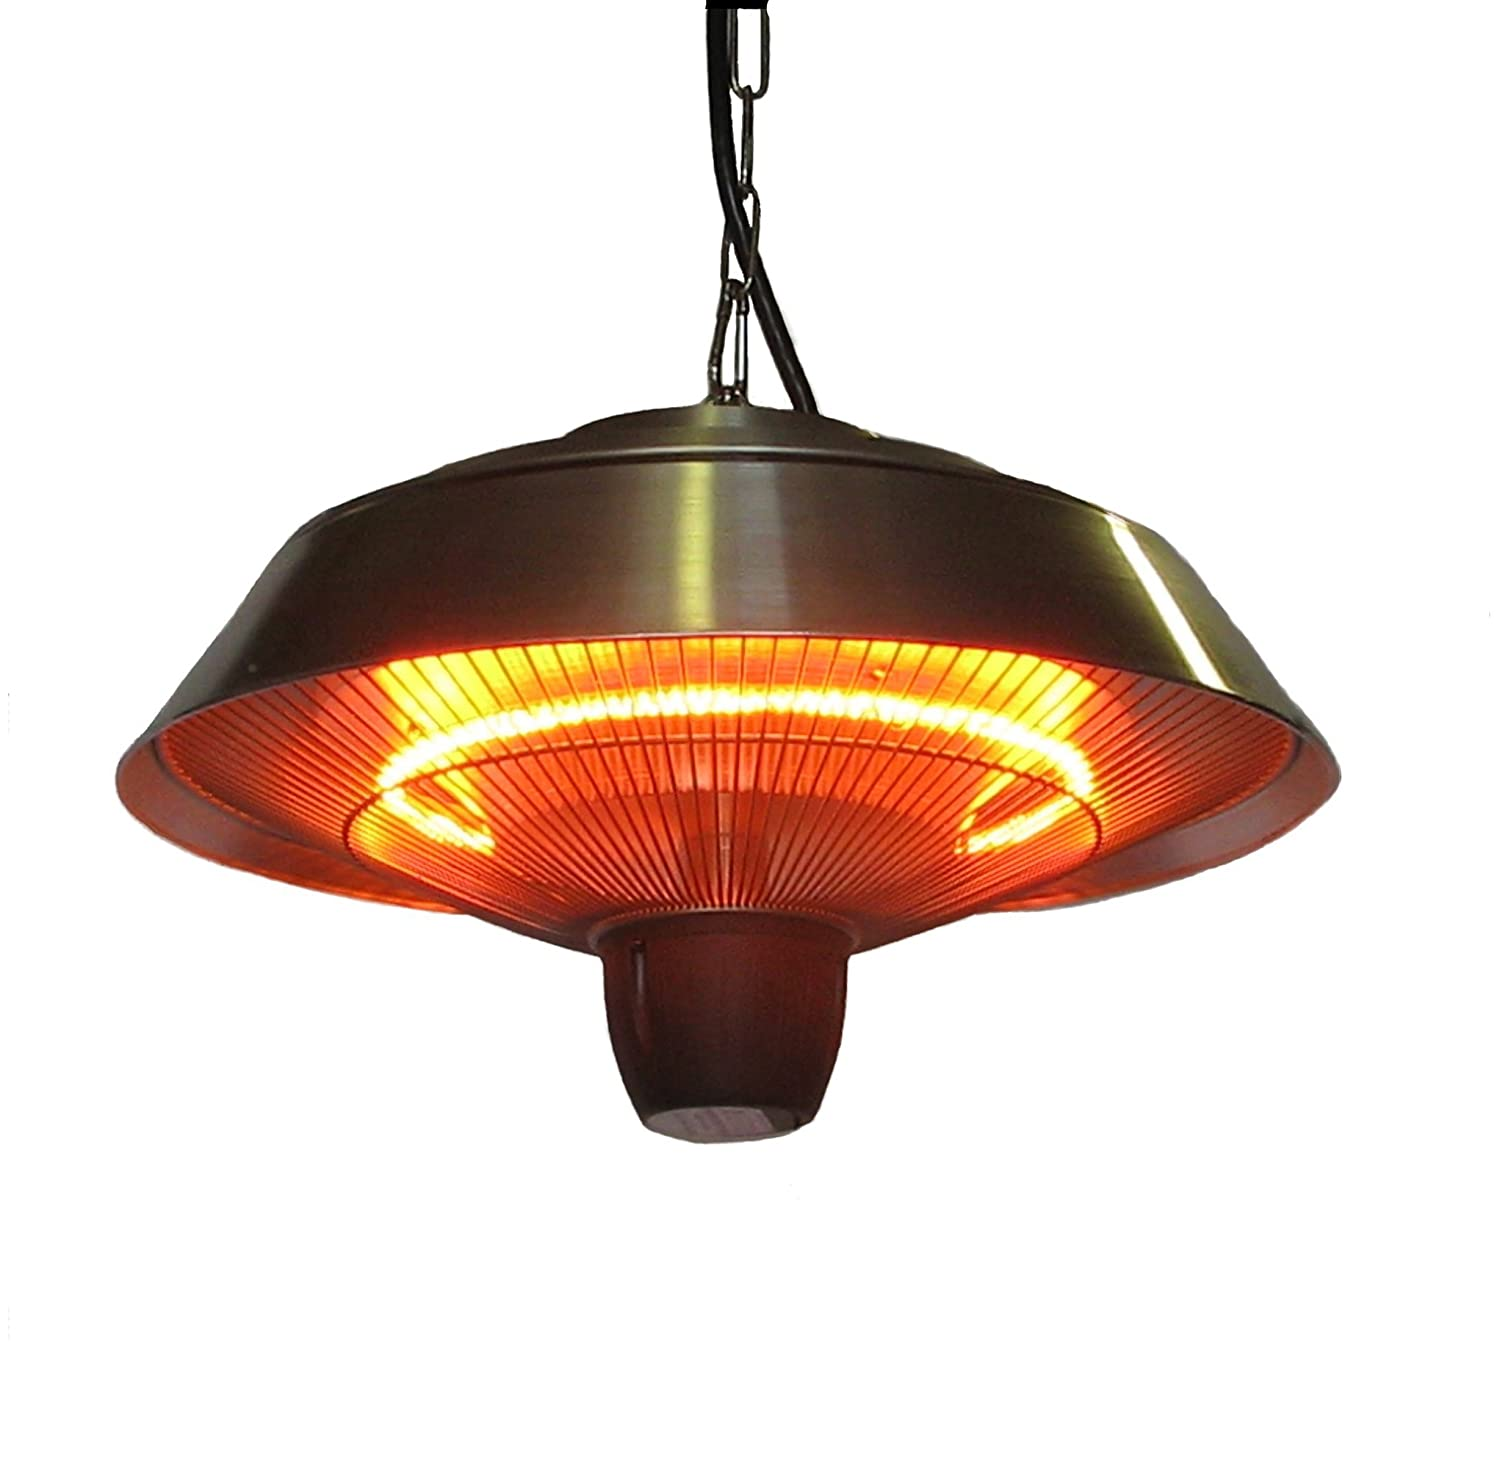 Amazon.com : Ener G+ HEA 21523 Ceiling Patio Heater : Portable Outdoor  Heating : Garden U0026 Outdoor